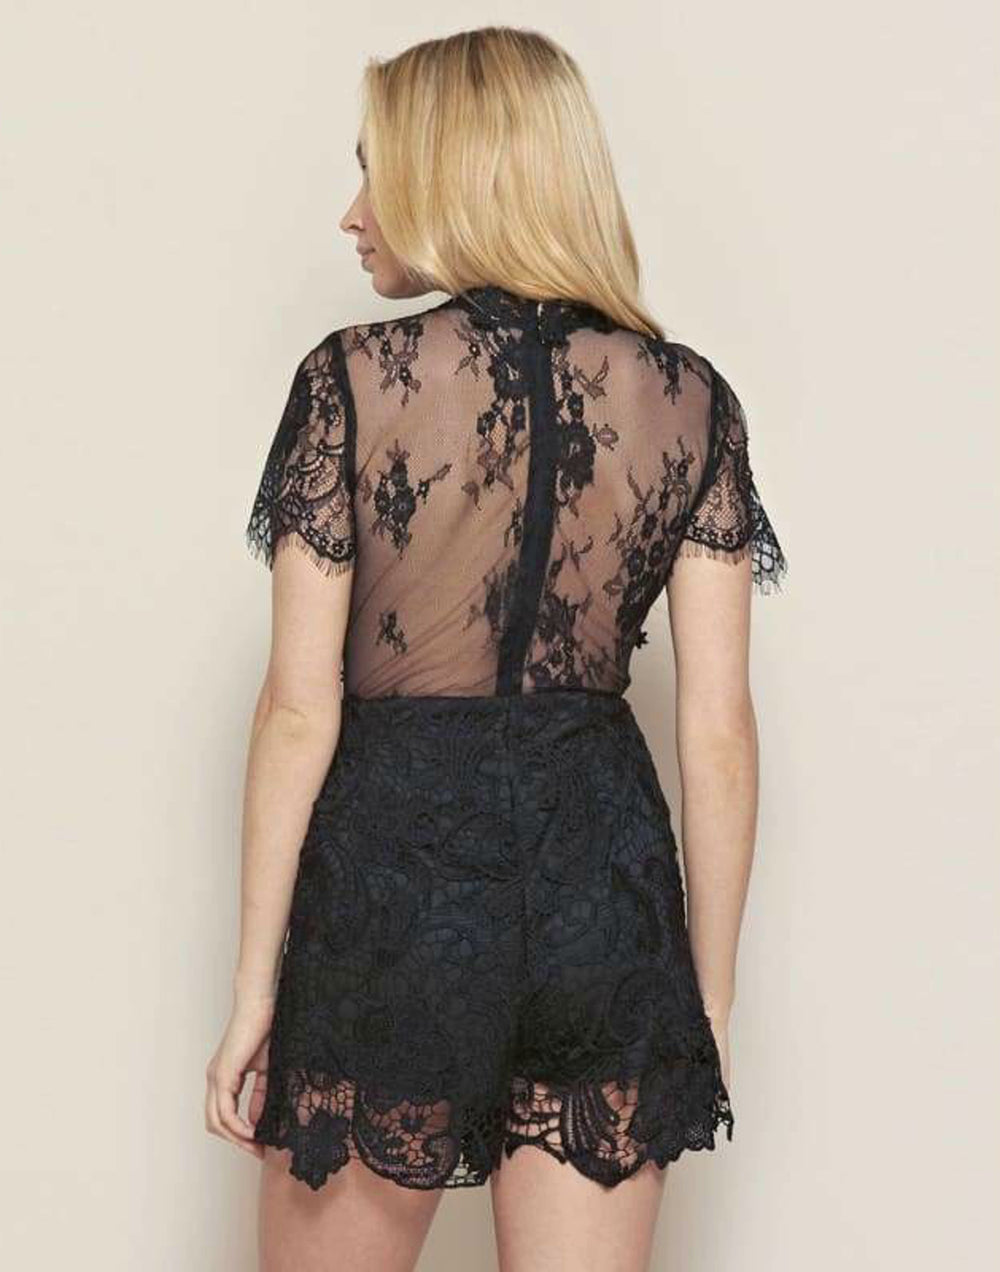 Lace Embroidered Playsuit - S Size